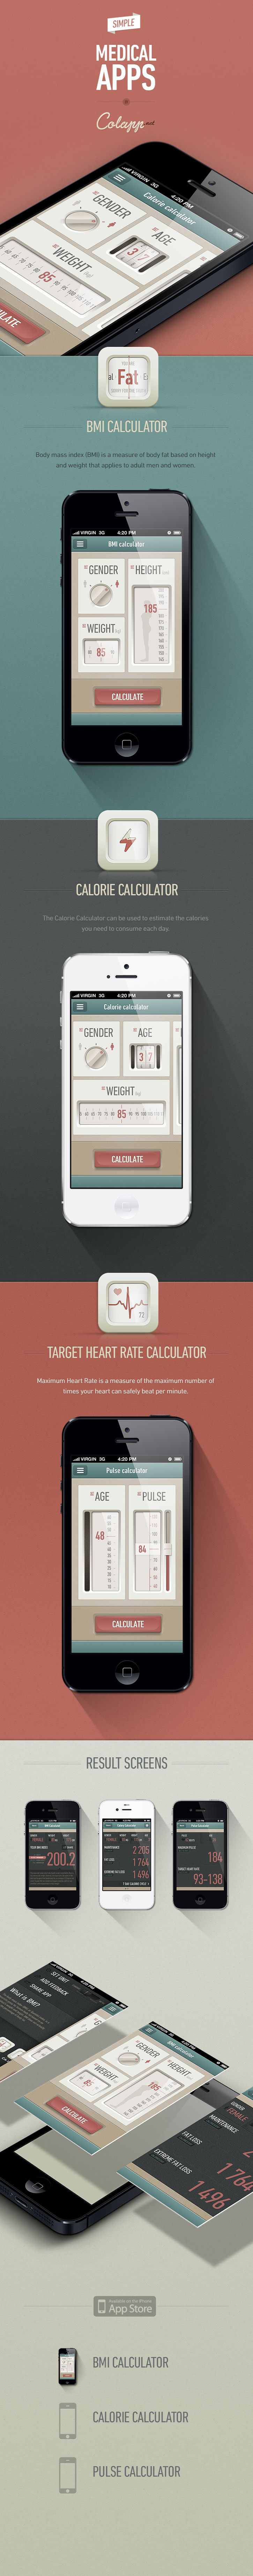 #UI #app #mobile #medical Medical apps by Gabor Jutasi + Daniel Kövesházi, via Behance.net